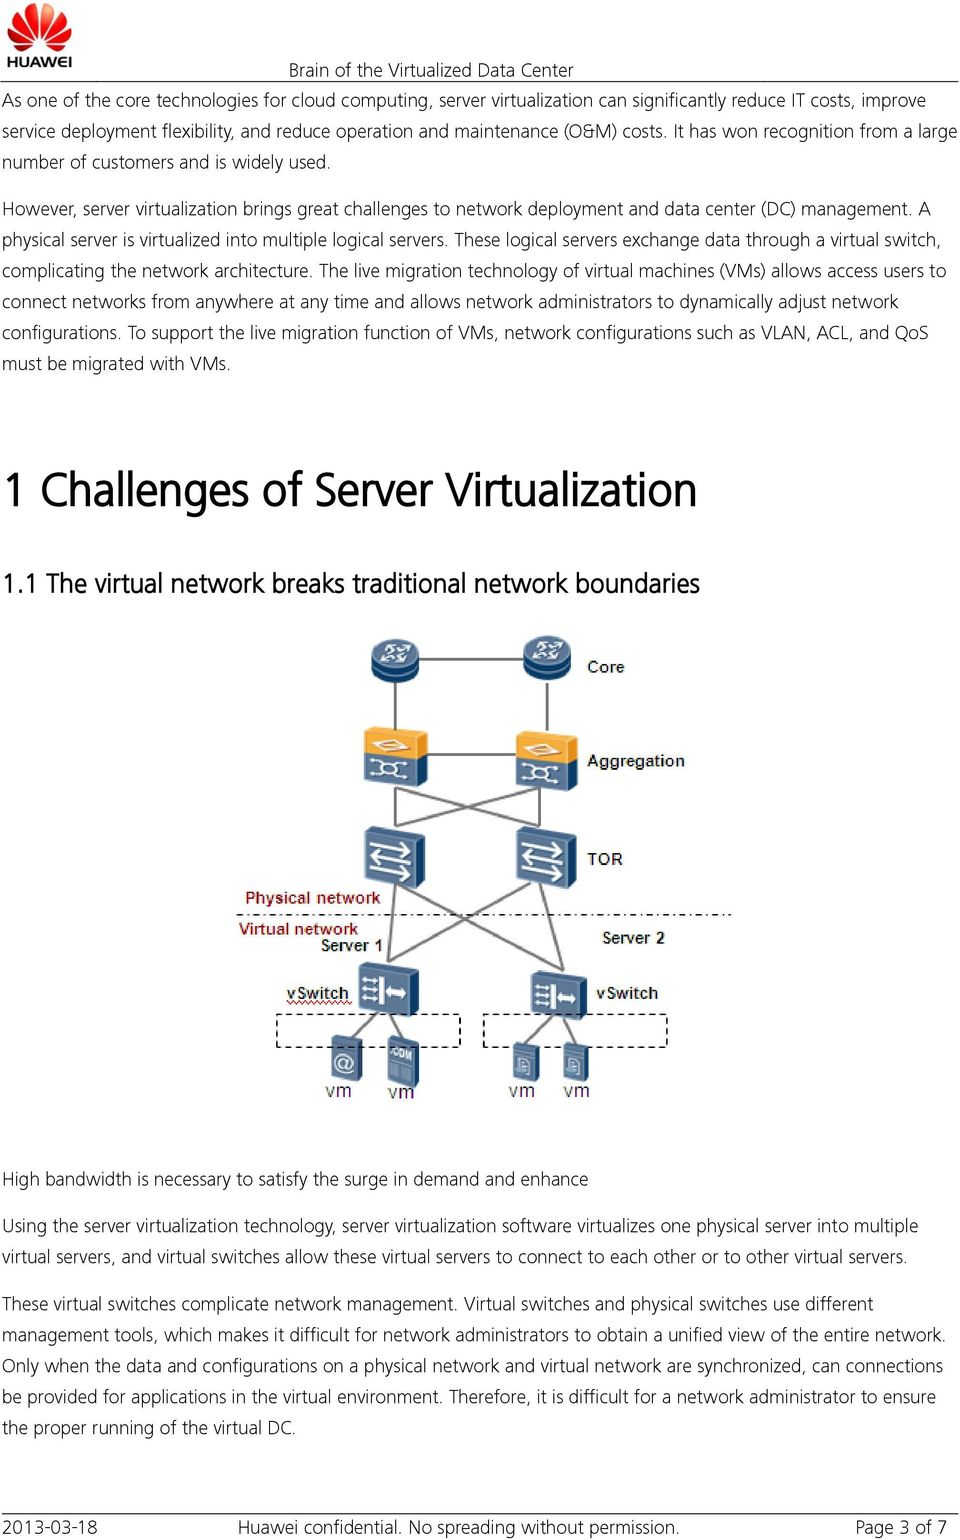 A physical server is virtualized into multiple logical servers. These logical servers exchange data through a virtual switch, complicating the network architecture.